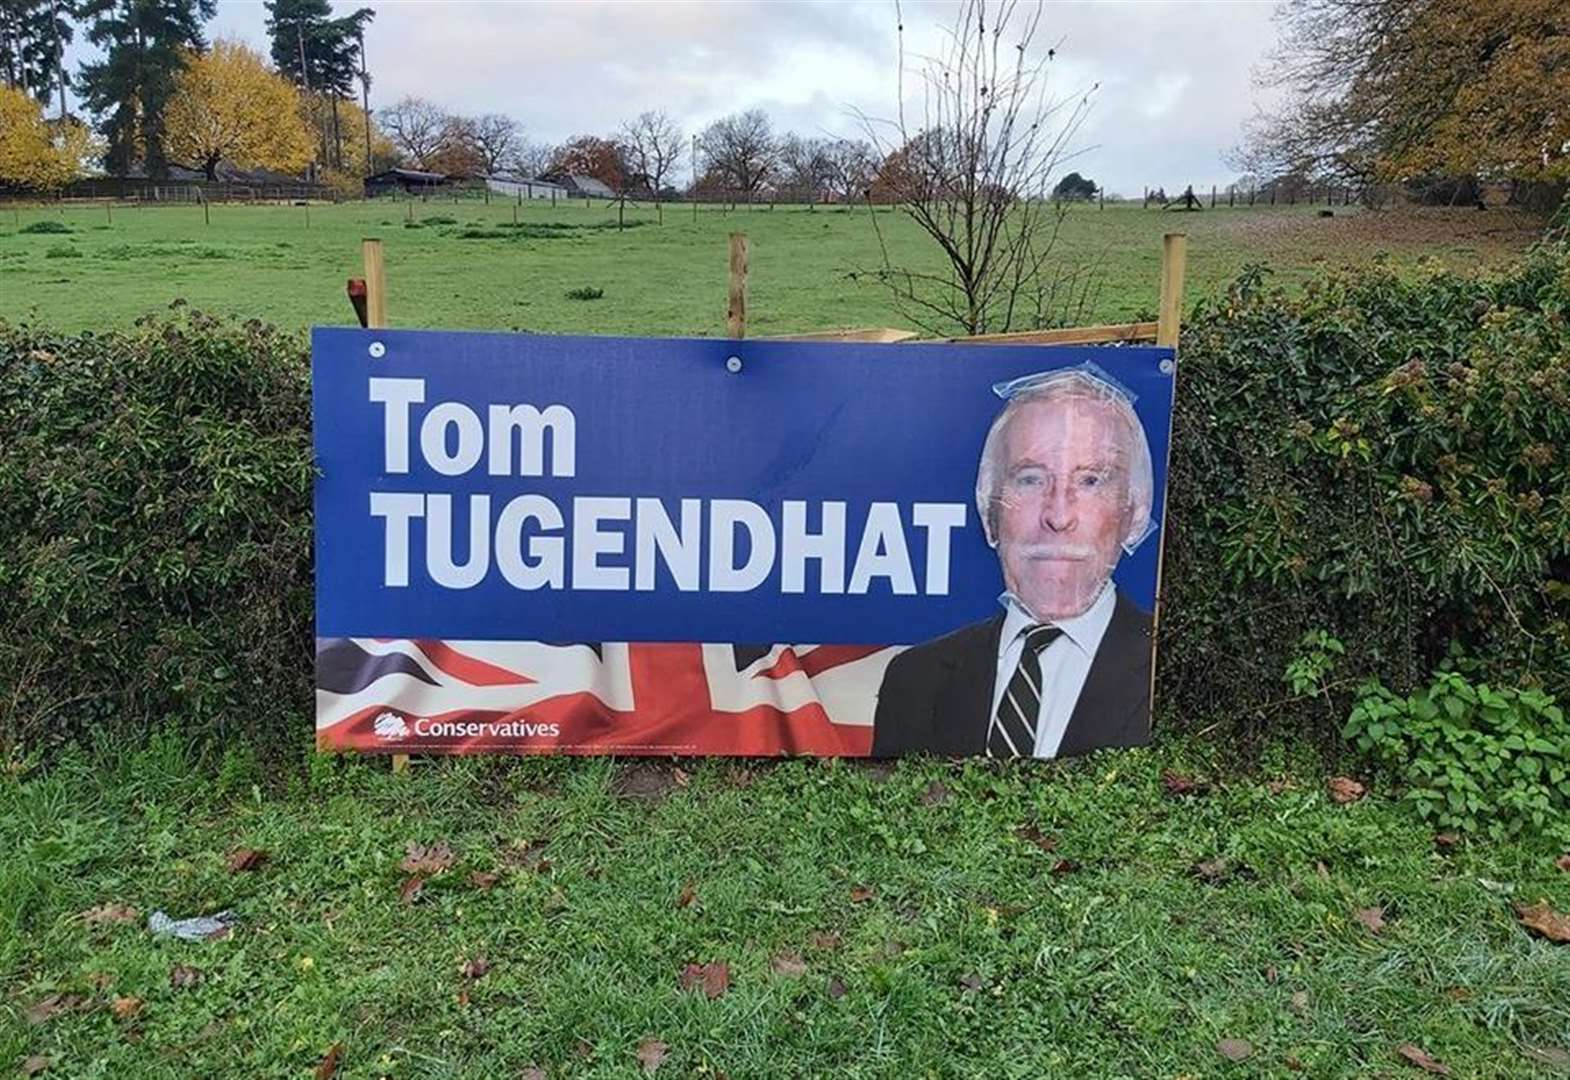 Pranksters target candidate's banners - again